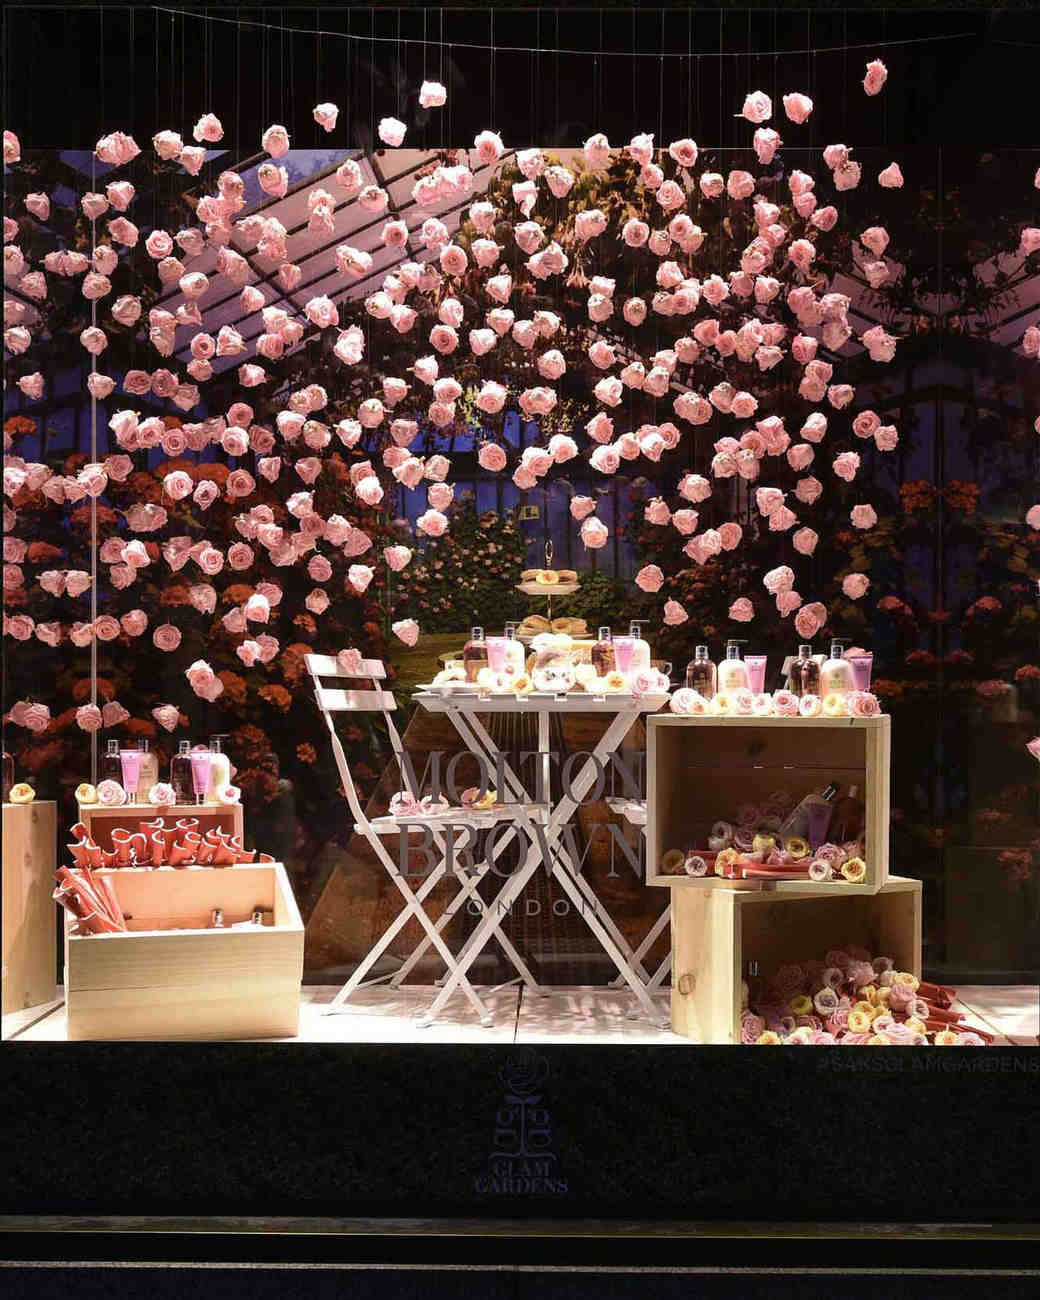 Flower Wall 5 Spectacular Flower Walls To Inspire Your Own Wedding Backdrop